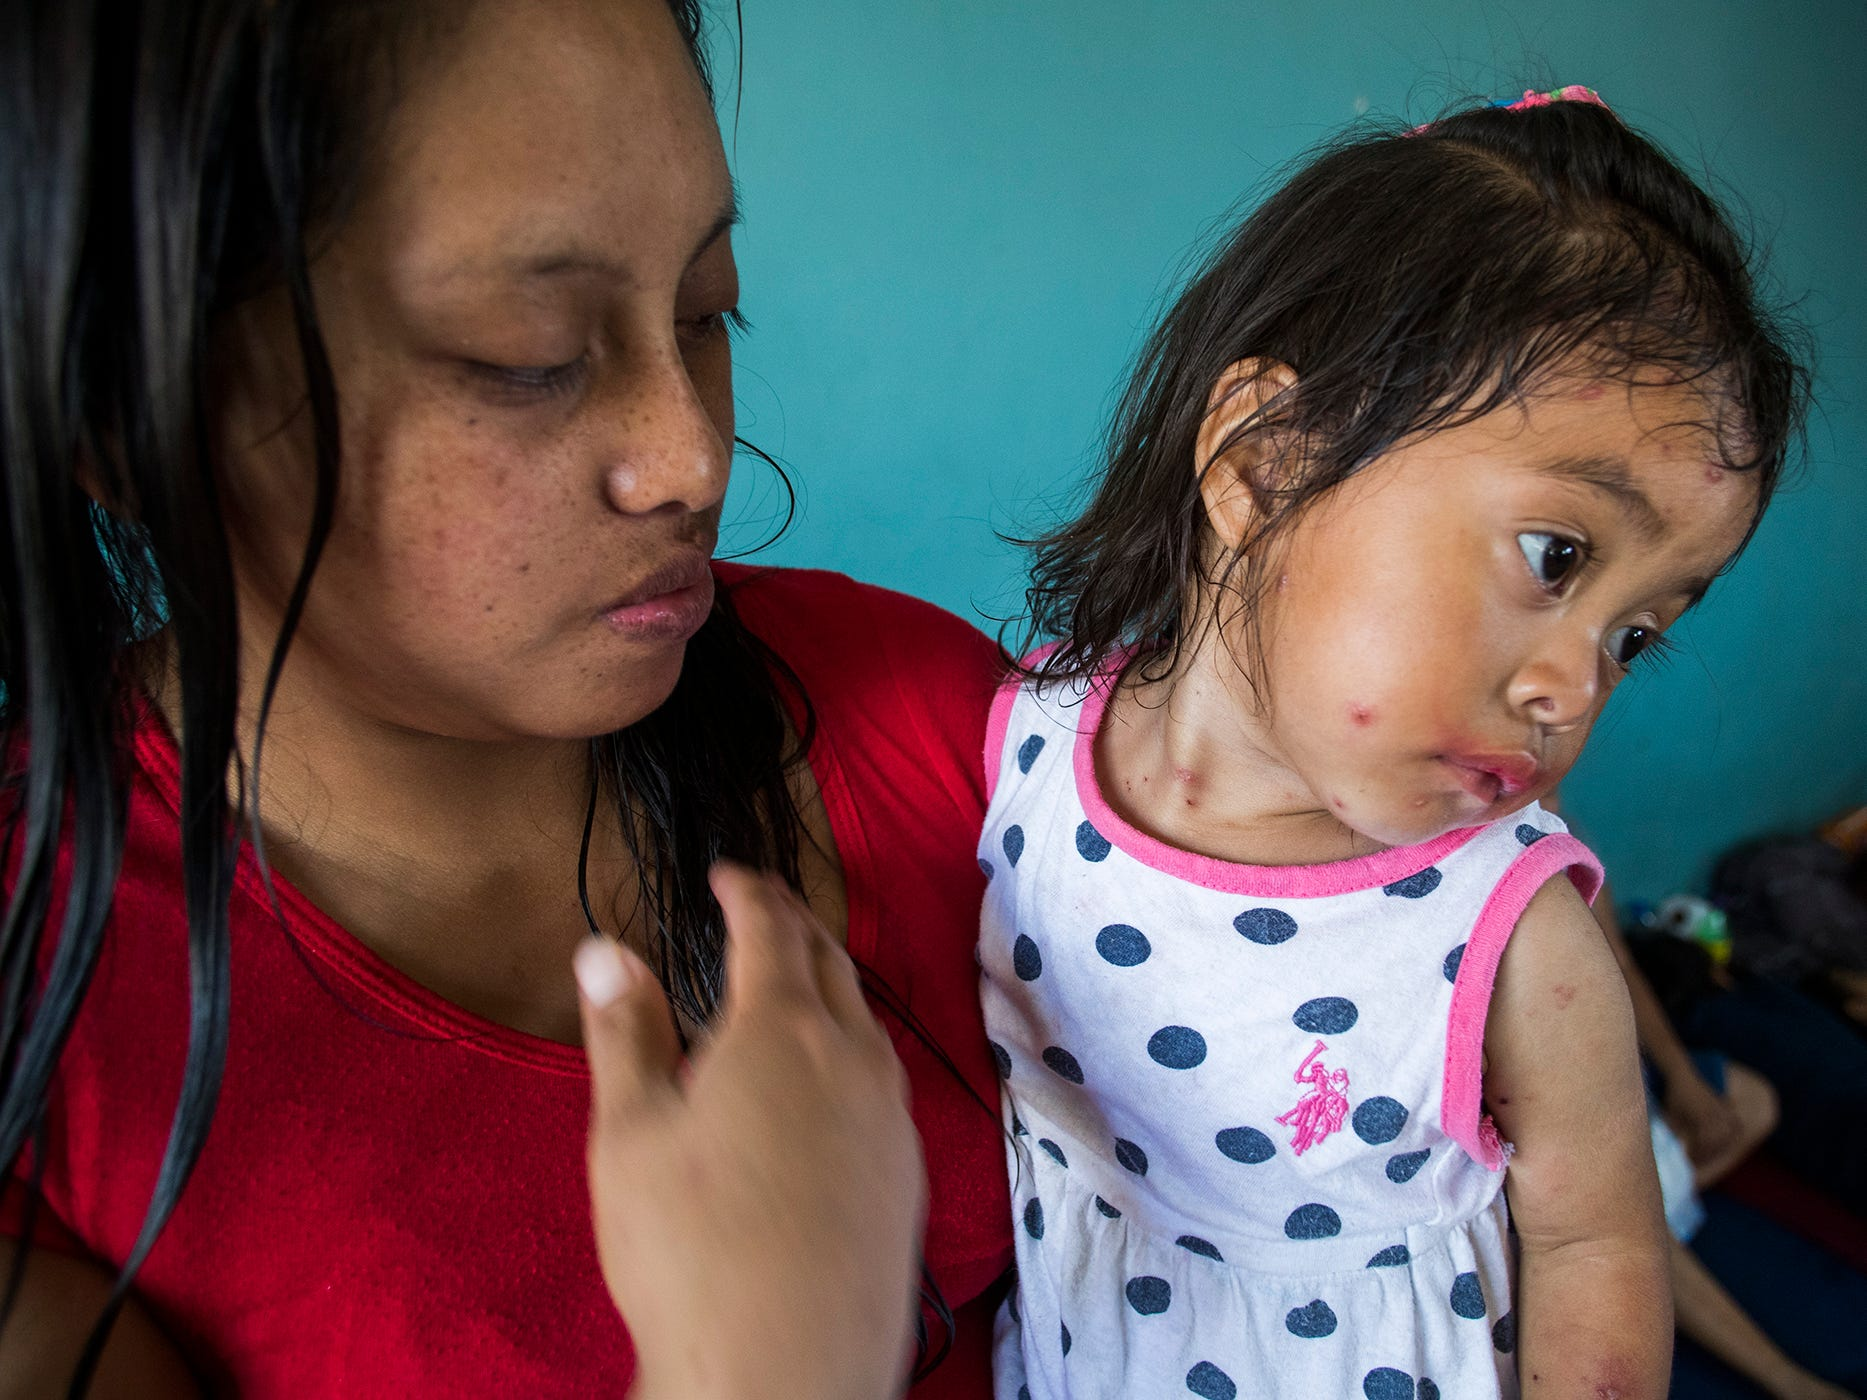 Mirsa Garcia Ramos, a migrant who was returned to Mexico under the Migrant Protection Protocol asylum holds her daughter Briseba Aracely Camillo Garcia, 2, who shows symptoms of being infected by the chickenpox virus at a migrant shelter in Mexicali on May 14, 2019.